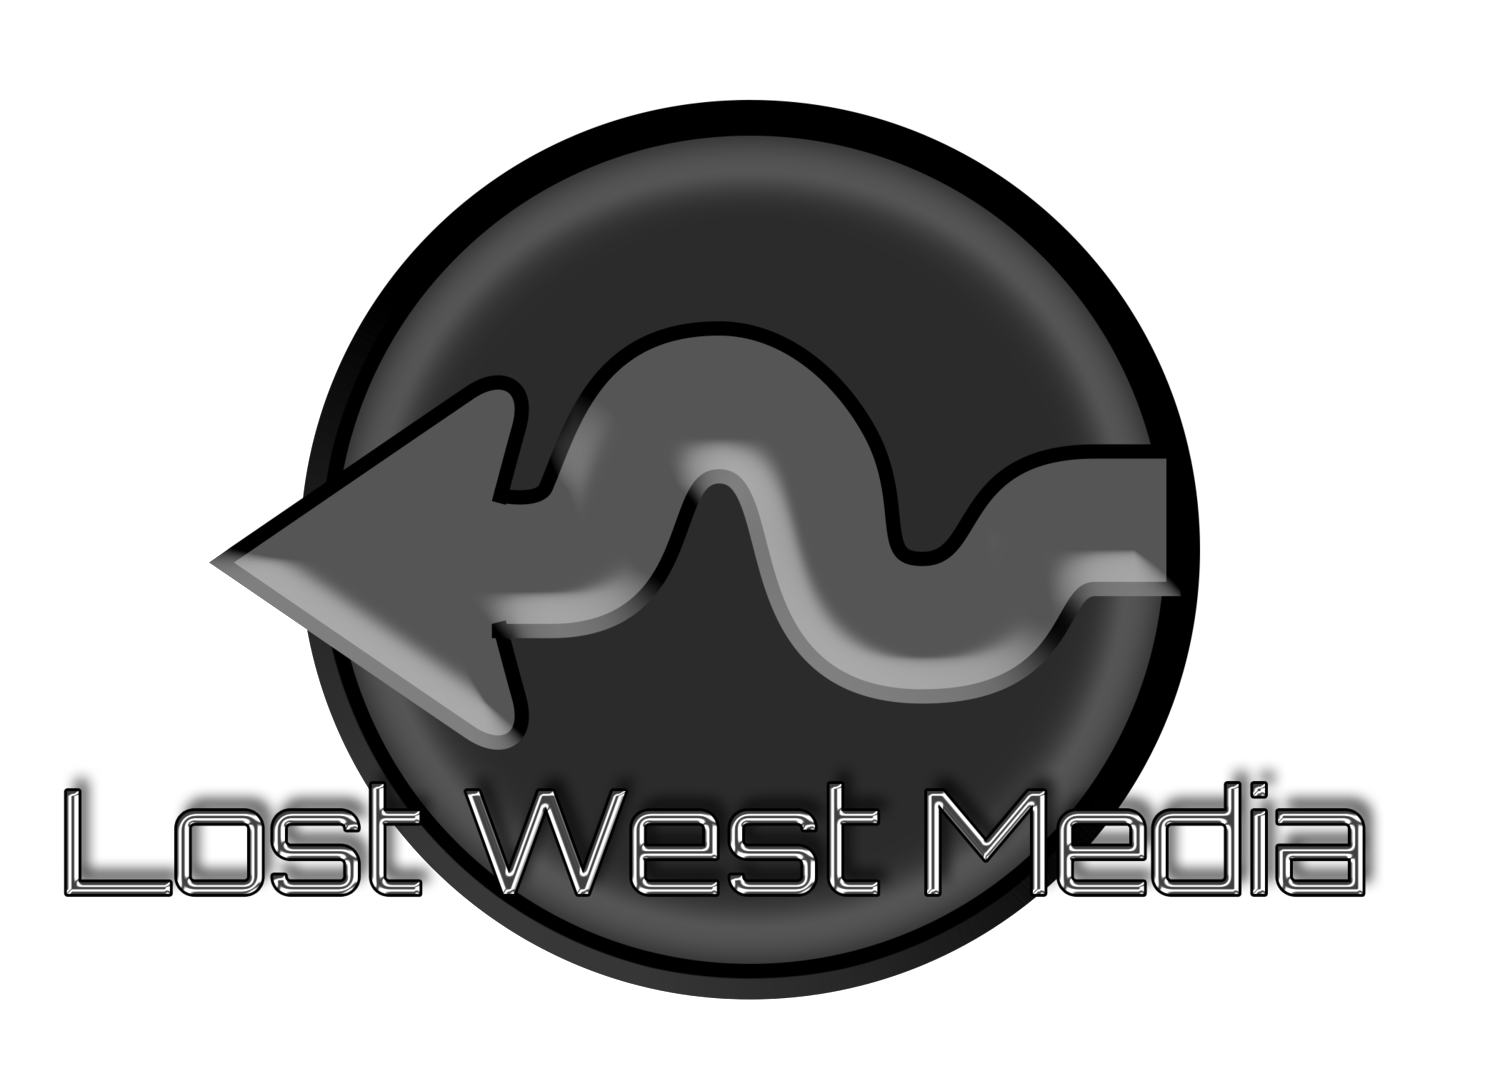 Lost West Media